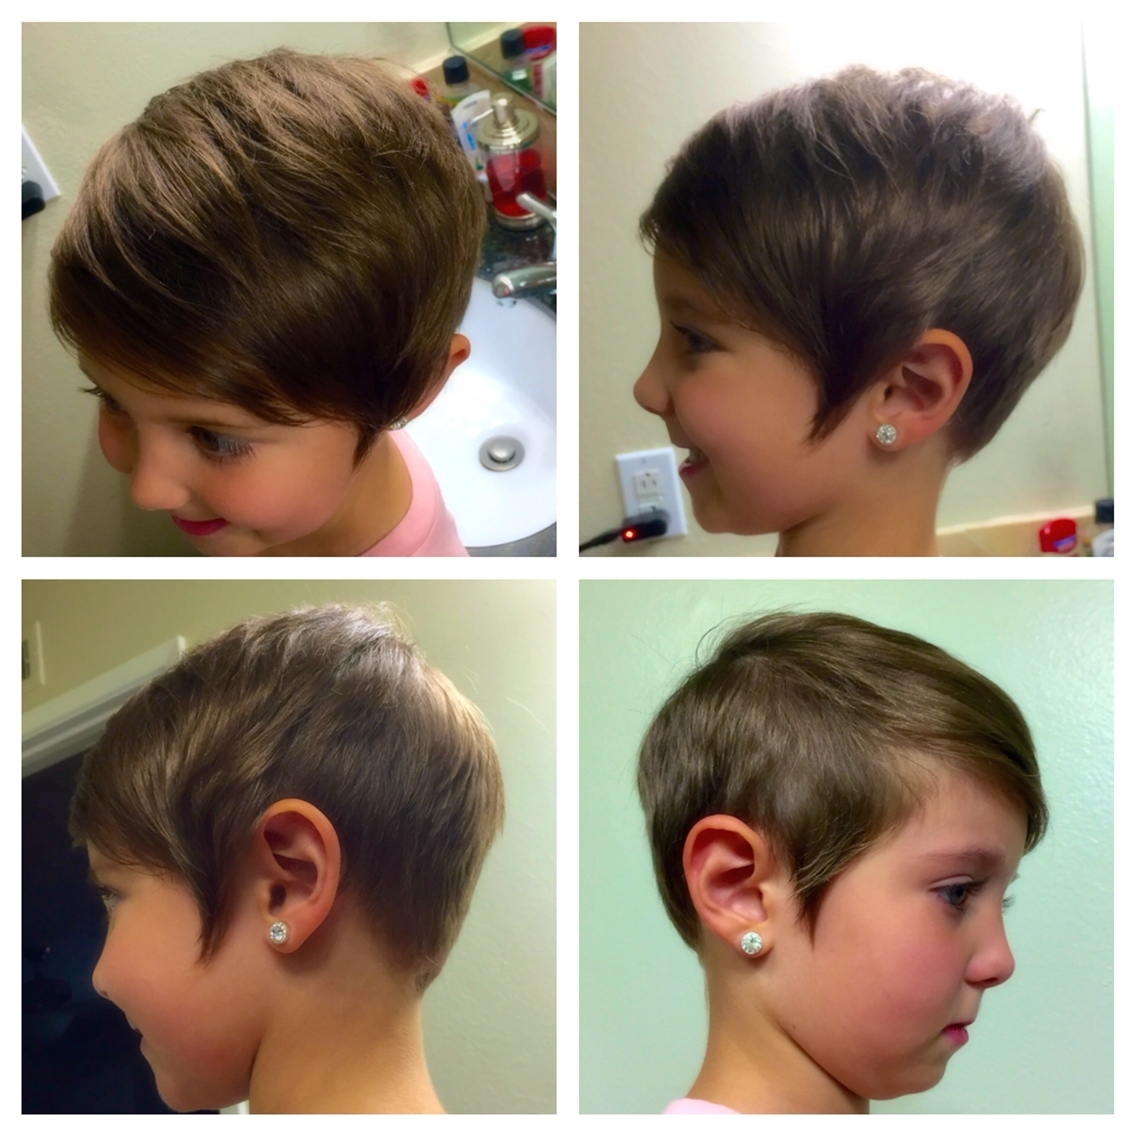 Displaying Photos Of Kids Pixie Hairstyles View 6 Of 15 Photos